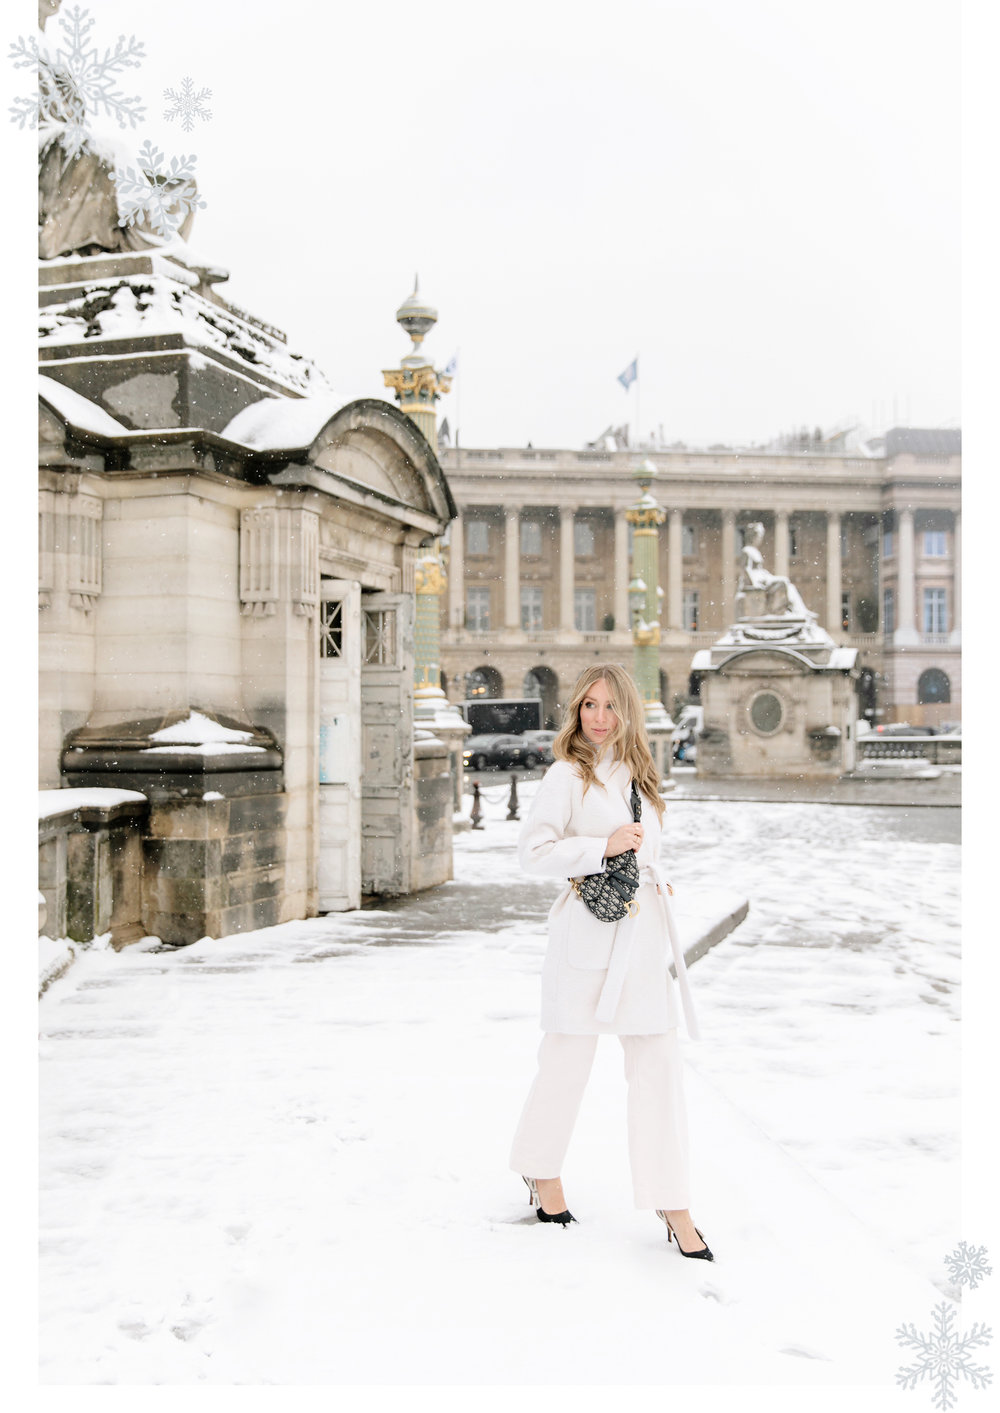 Carin_Olsson_Winter_Paris.jpg